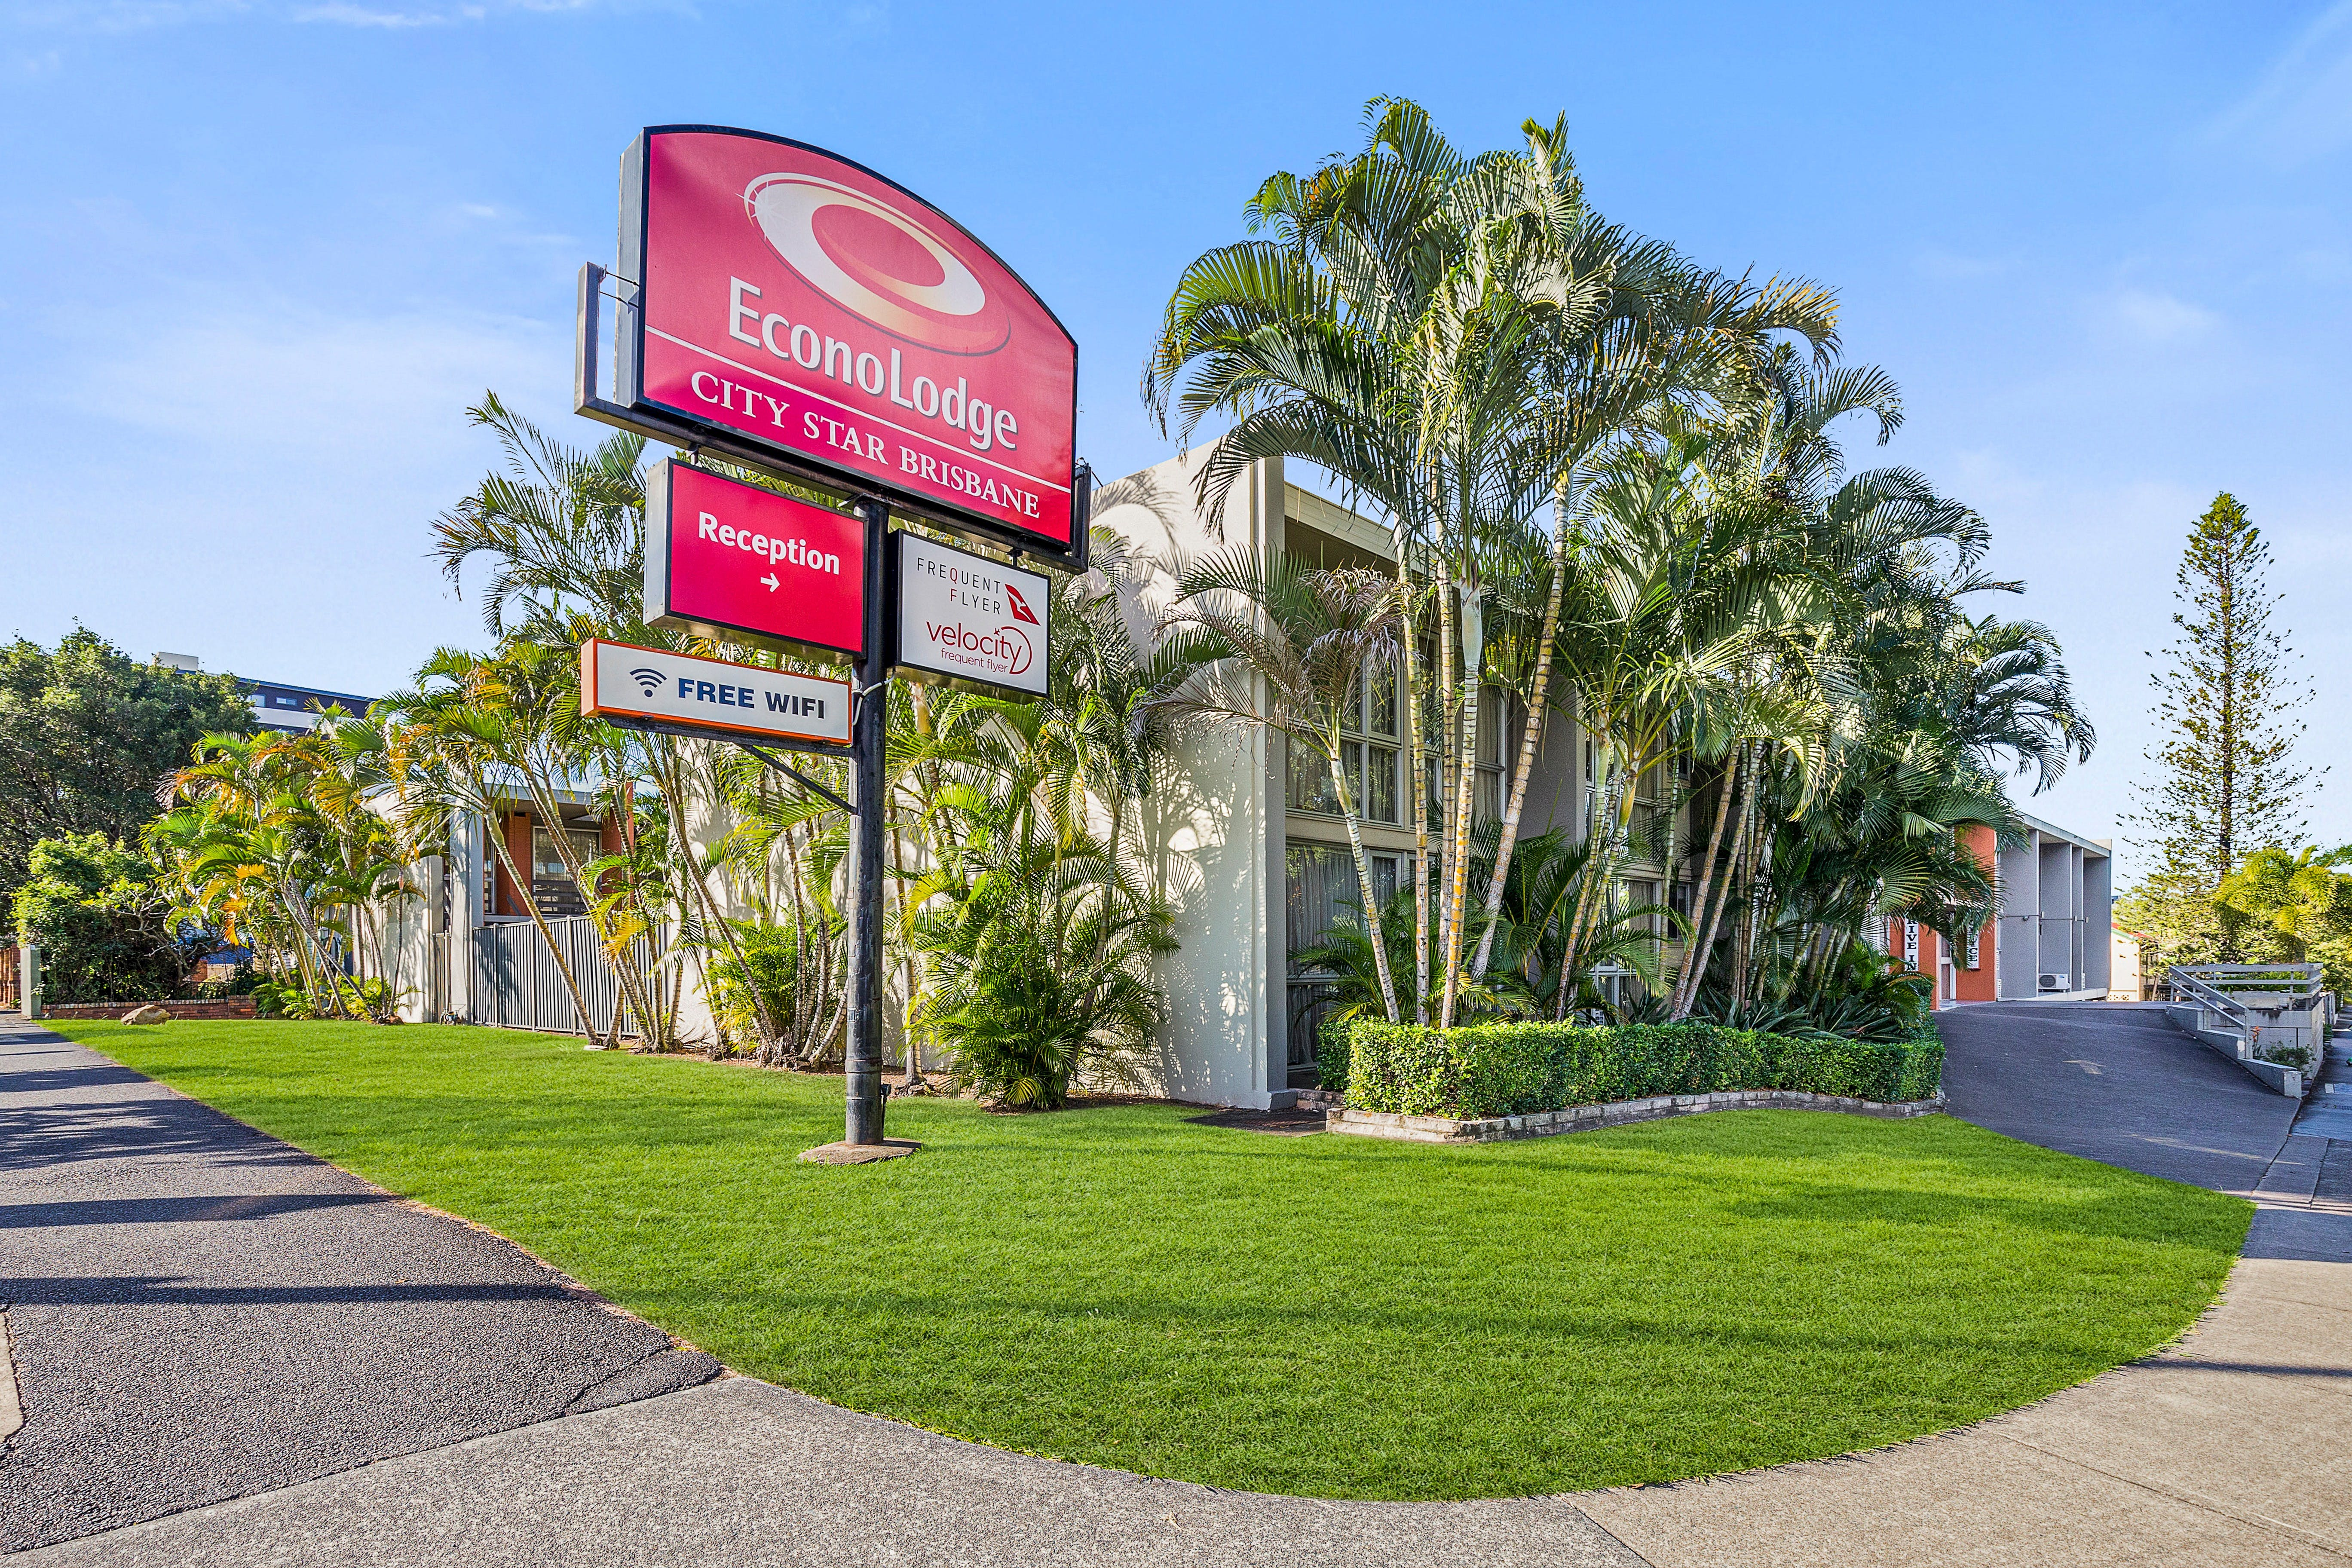 Econo Lodge City Star Brisbane - Townsville Tourism